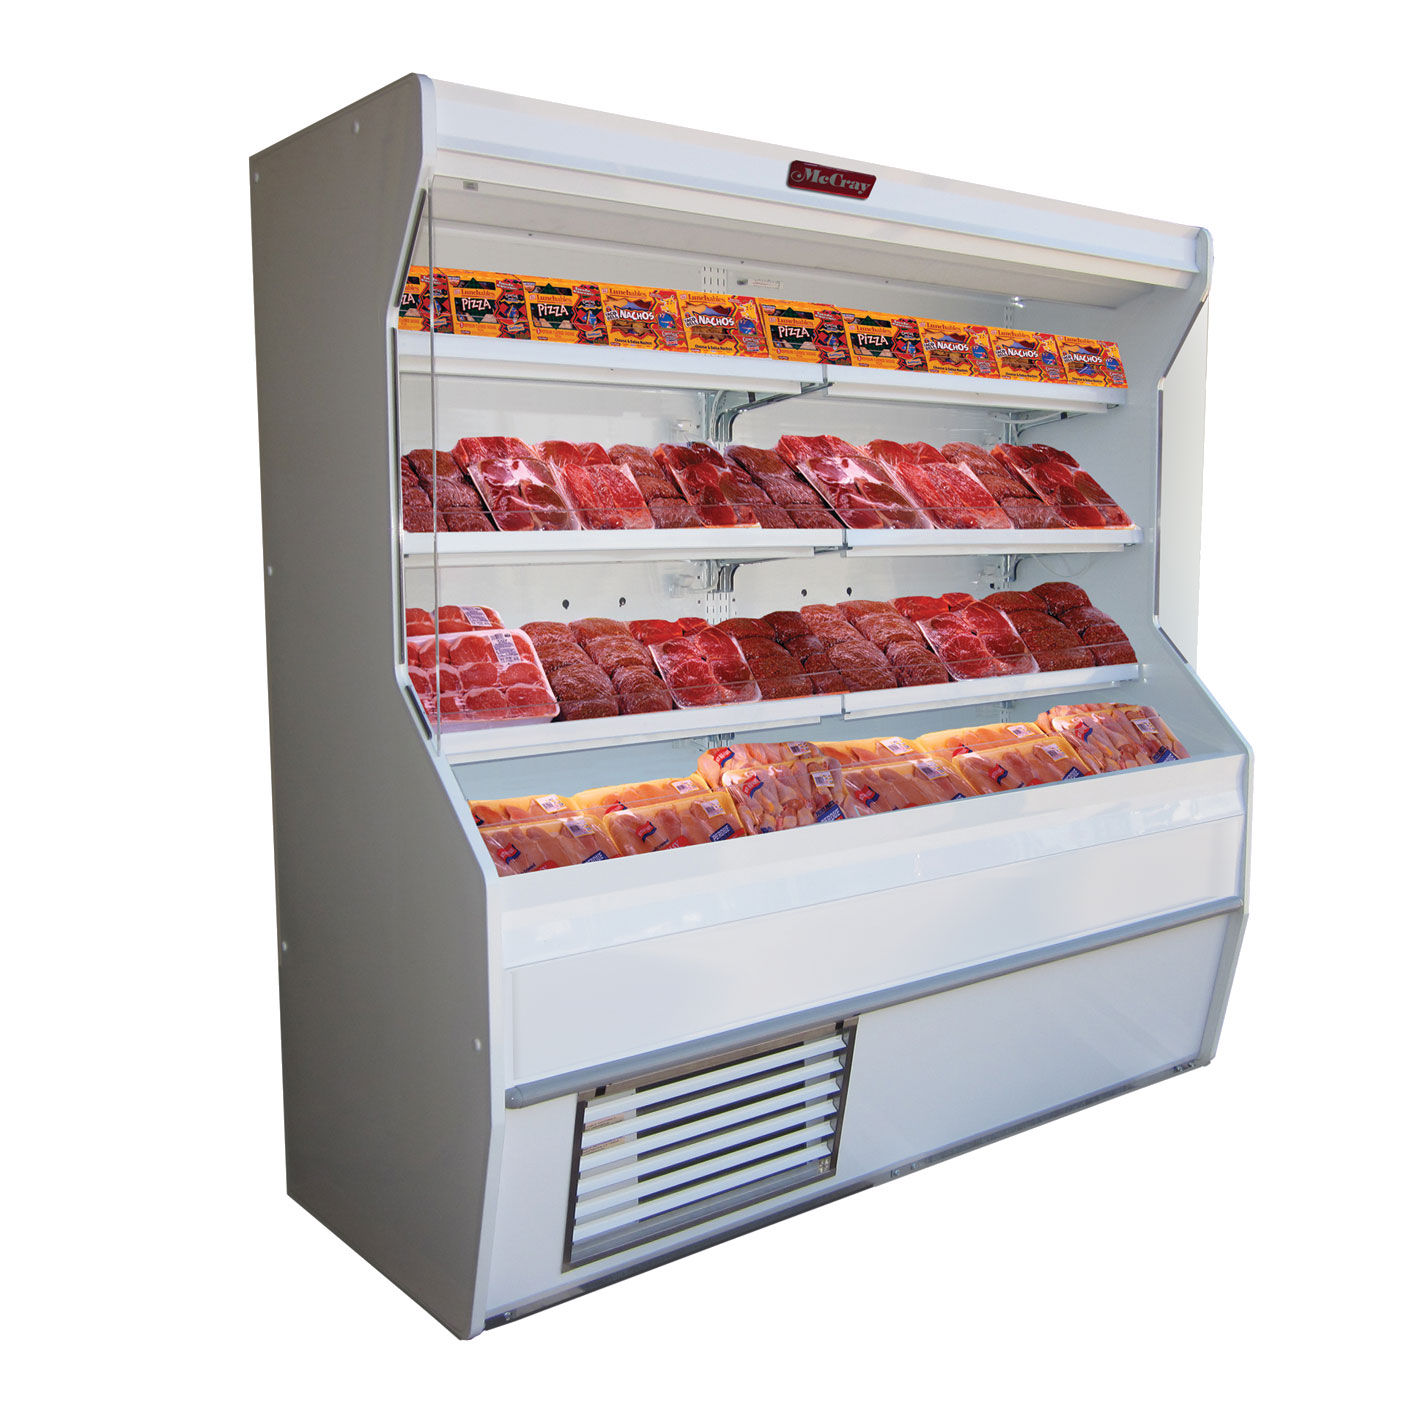 Howard-McCray R-M32E-12-LED merchandiser, open refrigerated display